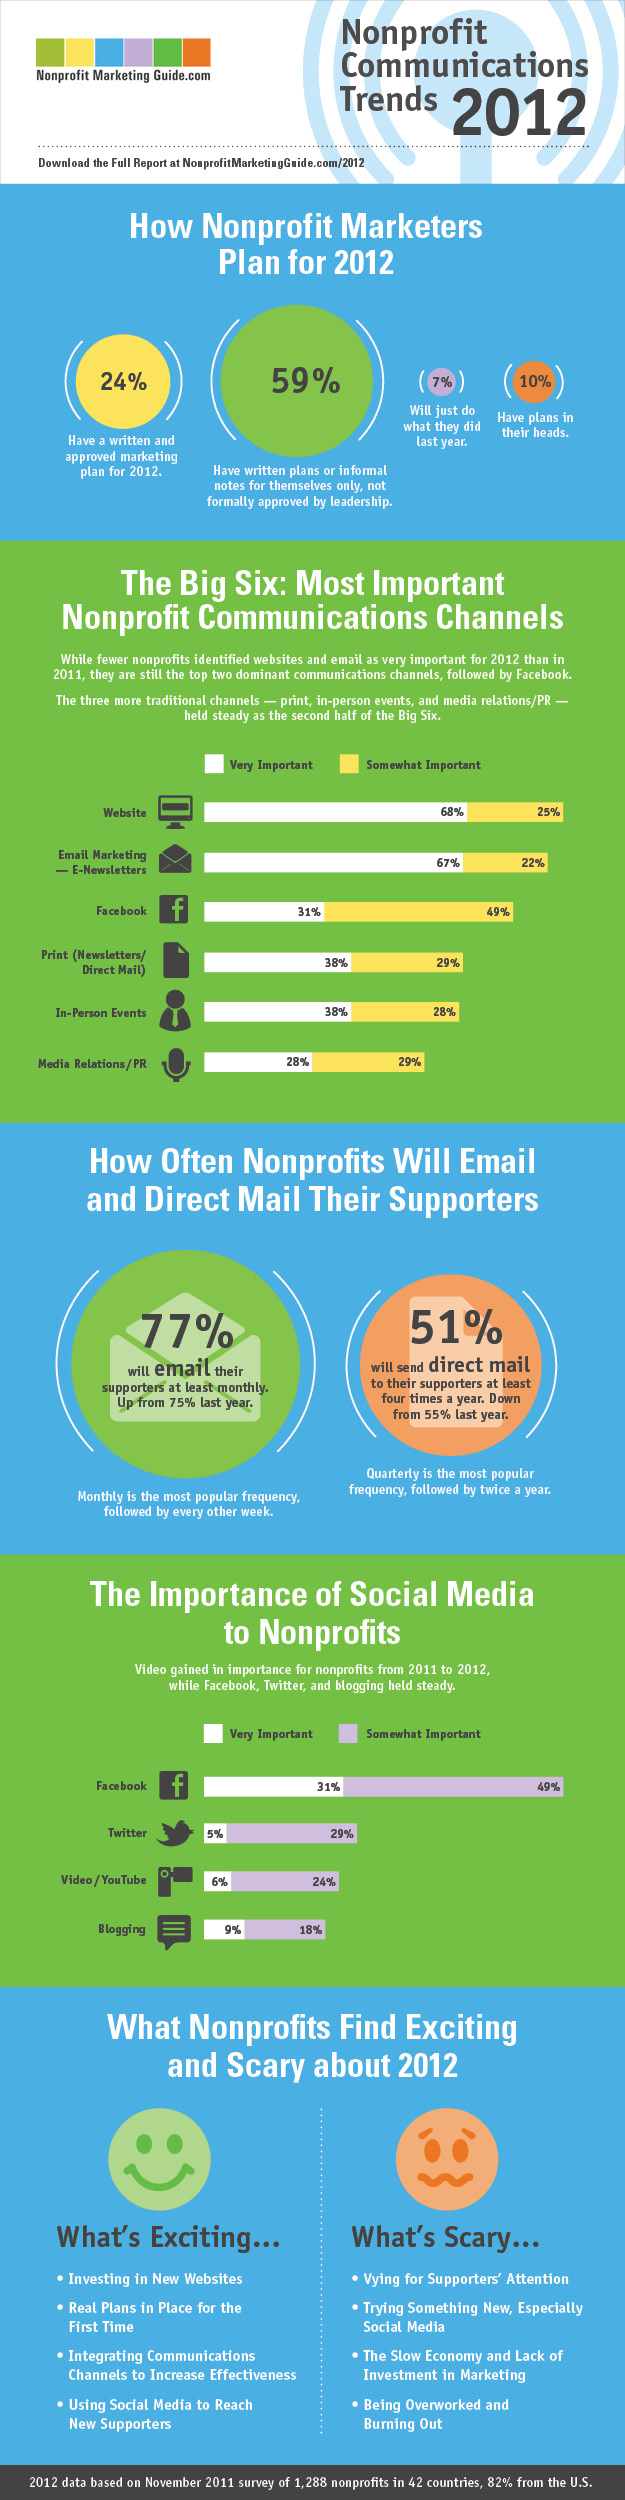 Nonprofit Communications Trends for 2012 Infographic